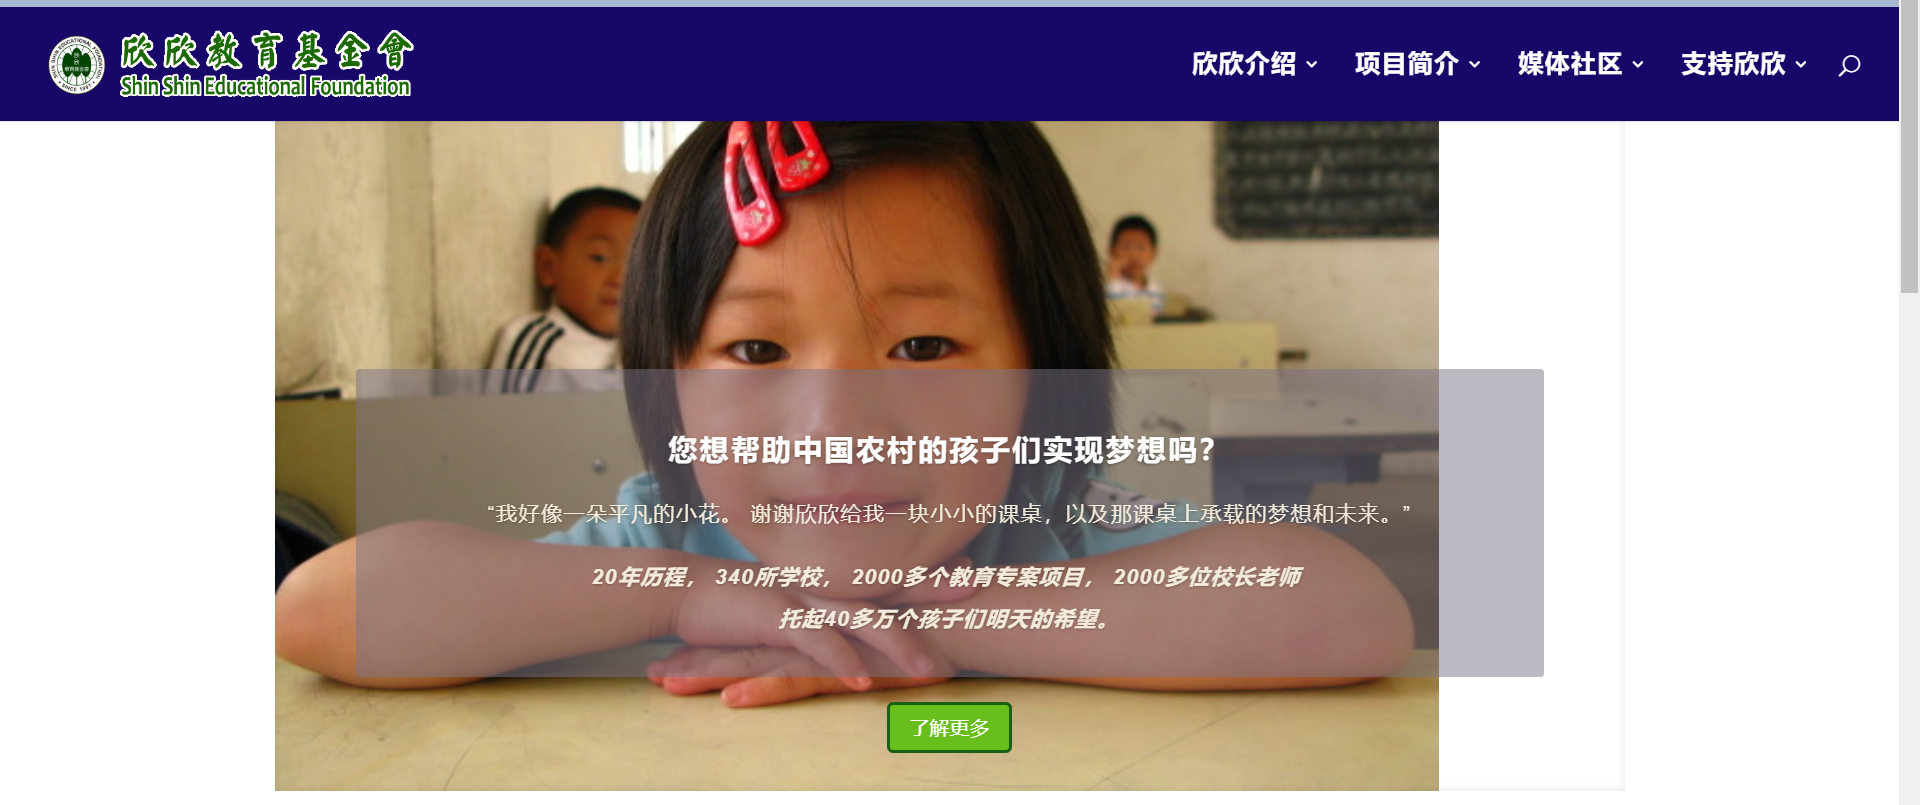 Shin Shin Educational Foundation